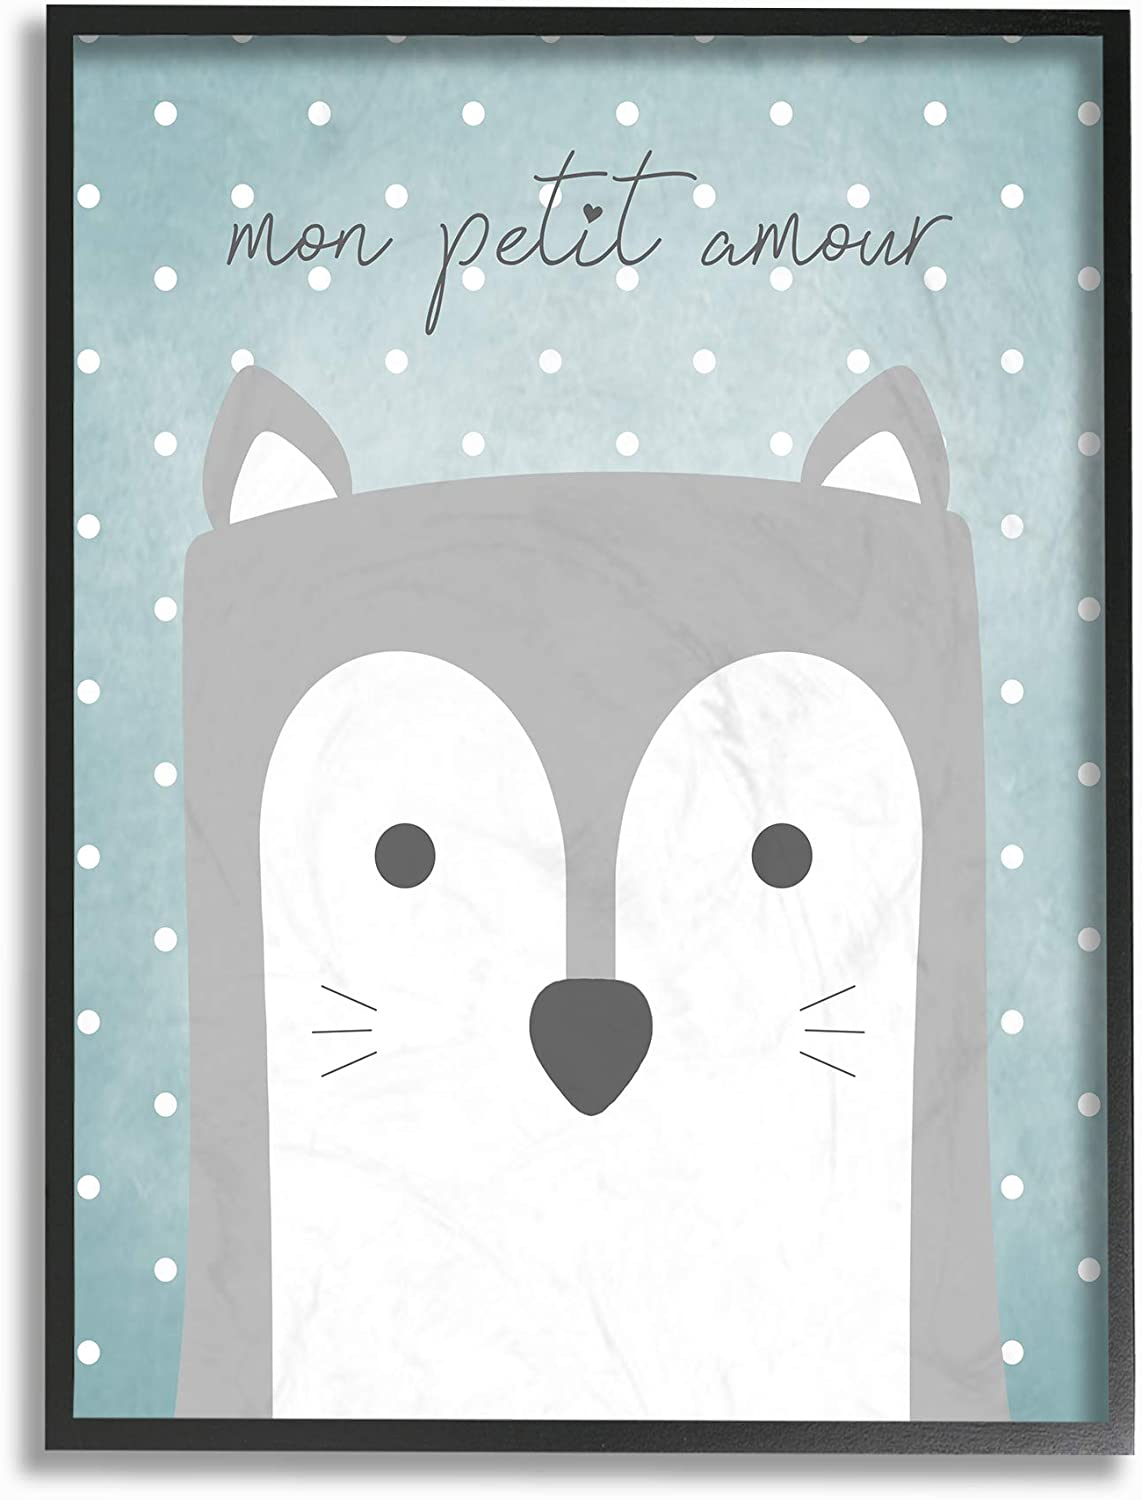 The Kids Room by Stupell Mon Petit Amour Grey Fox with Blue Polka dots Wall Plaque Art 10 x 15 Multi-Color Stupell Industries brp-2357/_wd/_10x15